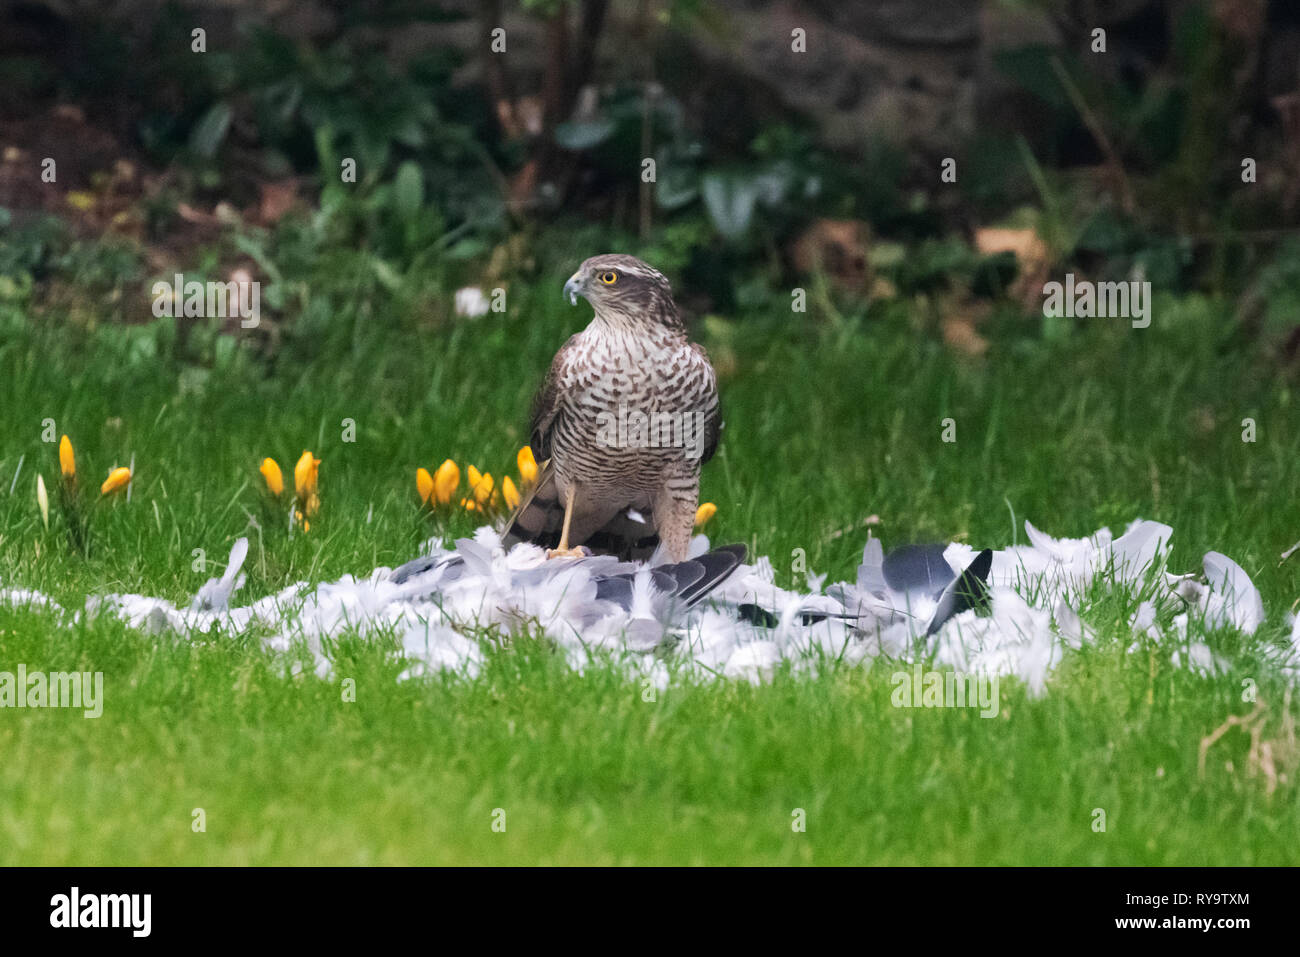 sparrowhawk-garden-uk-a-sparrowhawk-feeding-on-a-bird-in-a-domestic-garden-suffolk-uk-RY9TXM.jpg